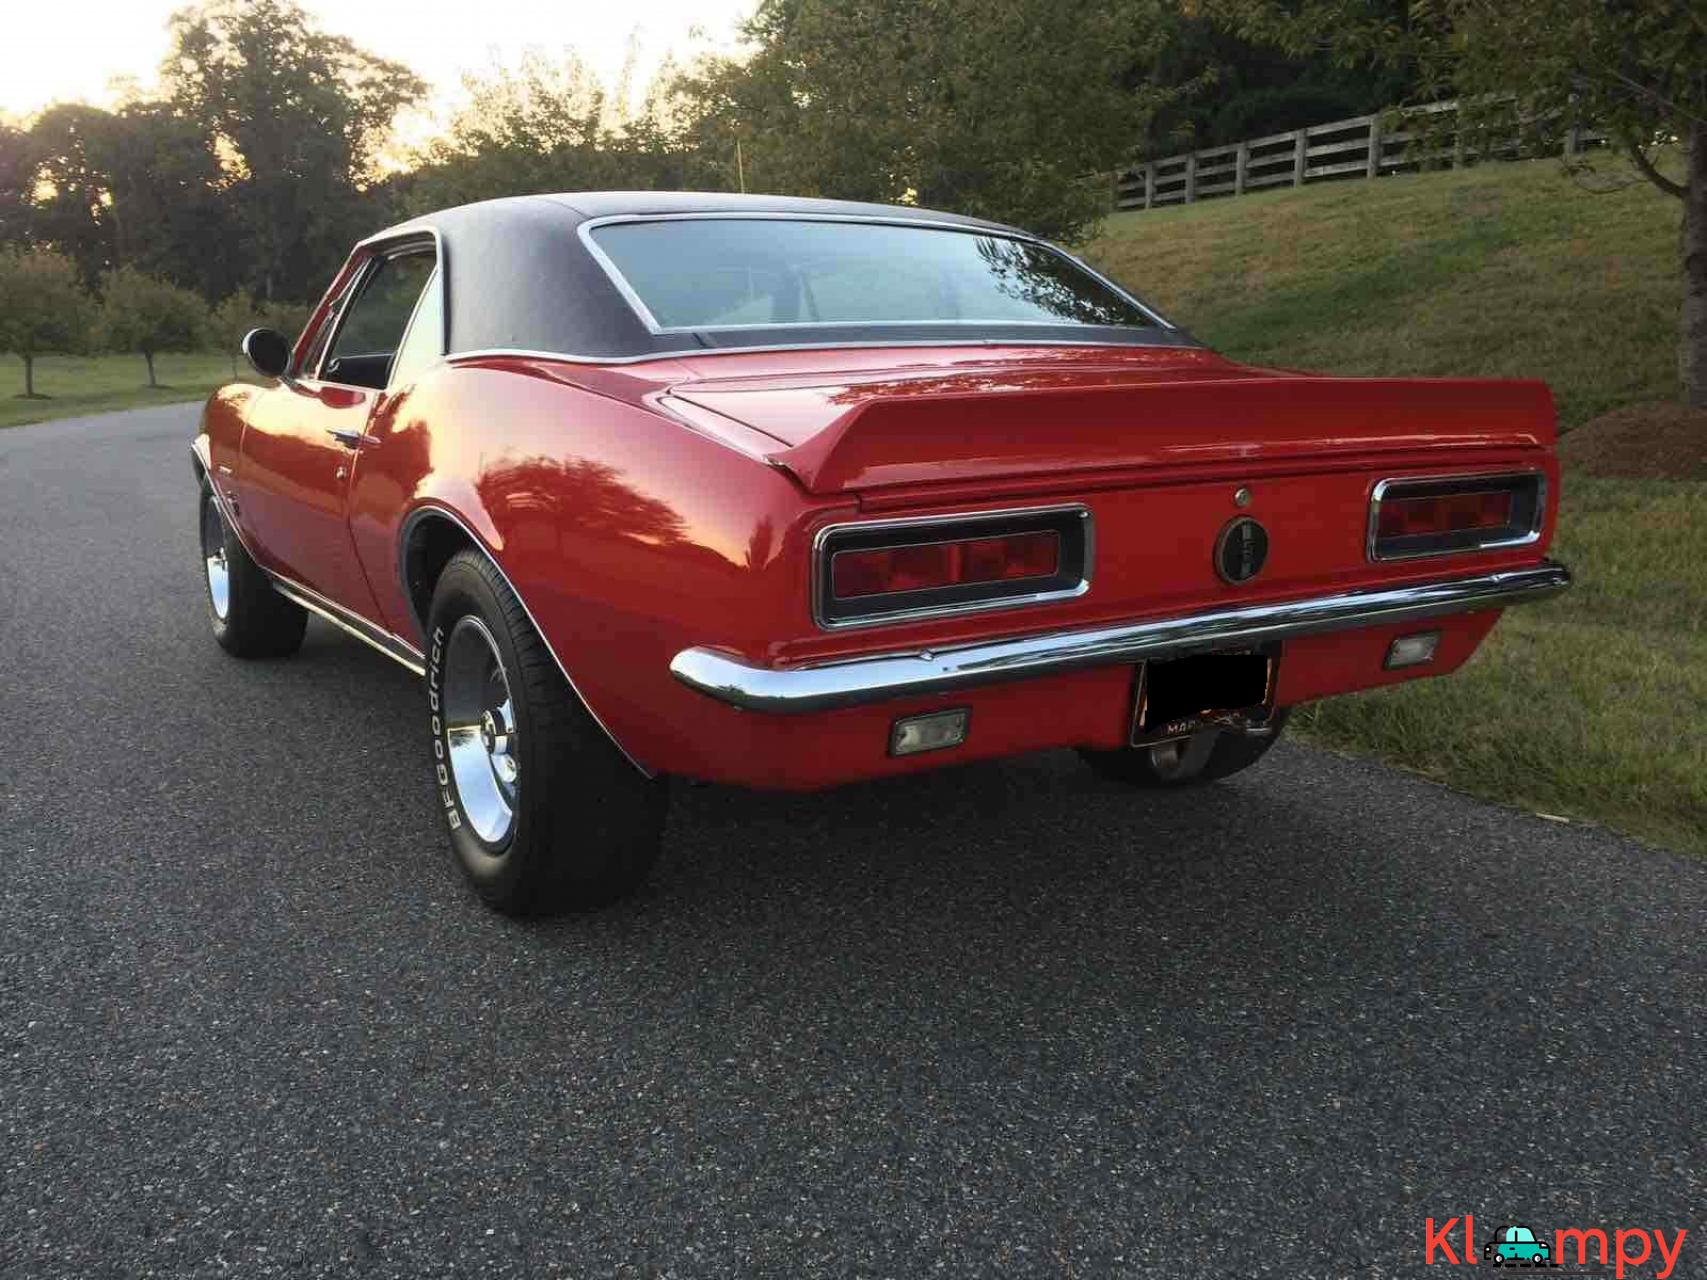 1967 Chevrolet Camaro RS Red RWD - 6/20